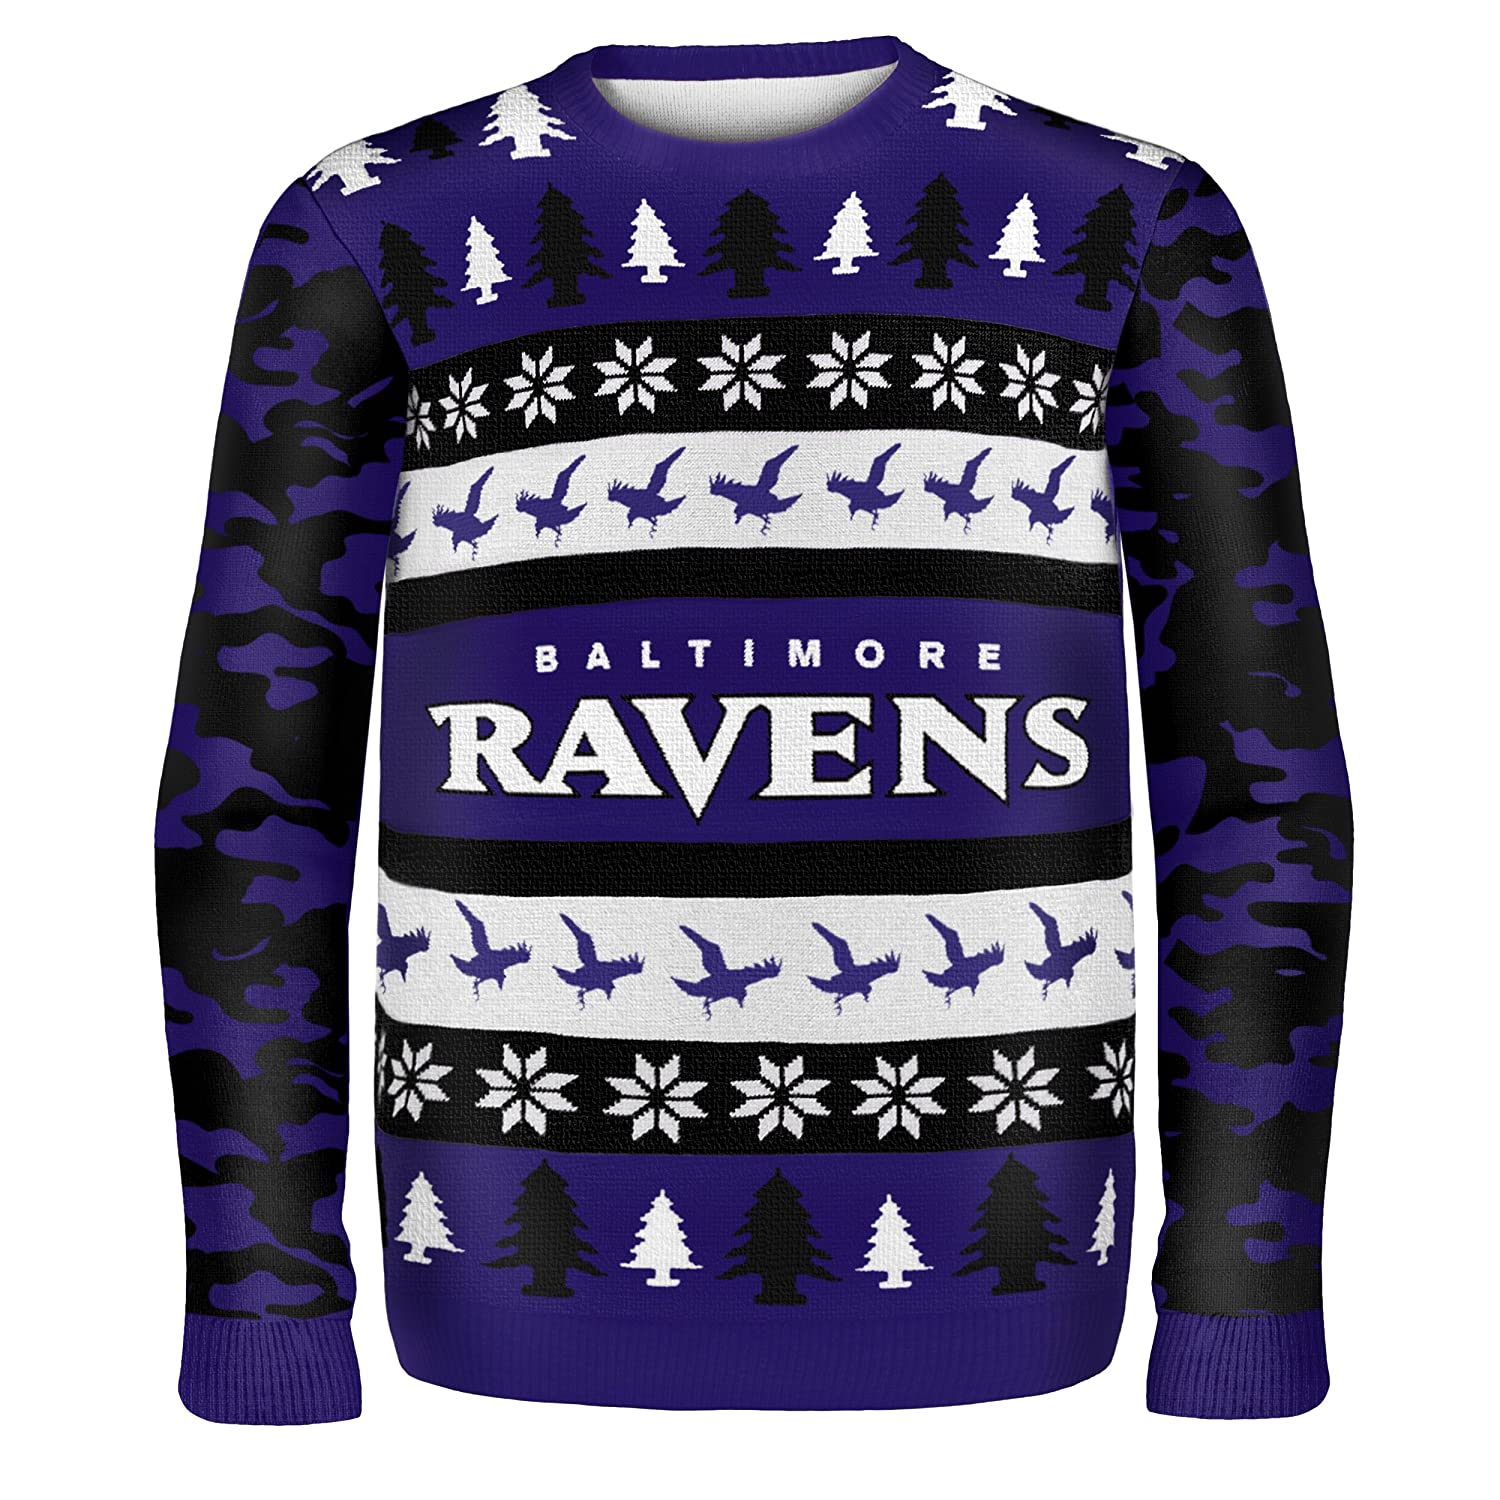 Amazon.com : NFL One Too Many Ugly Sweater : Sports & Outdoors